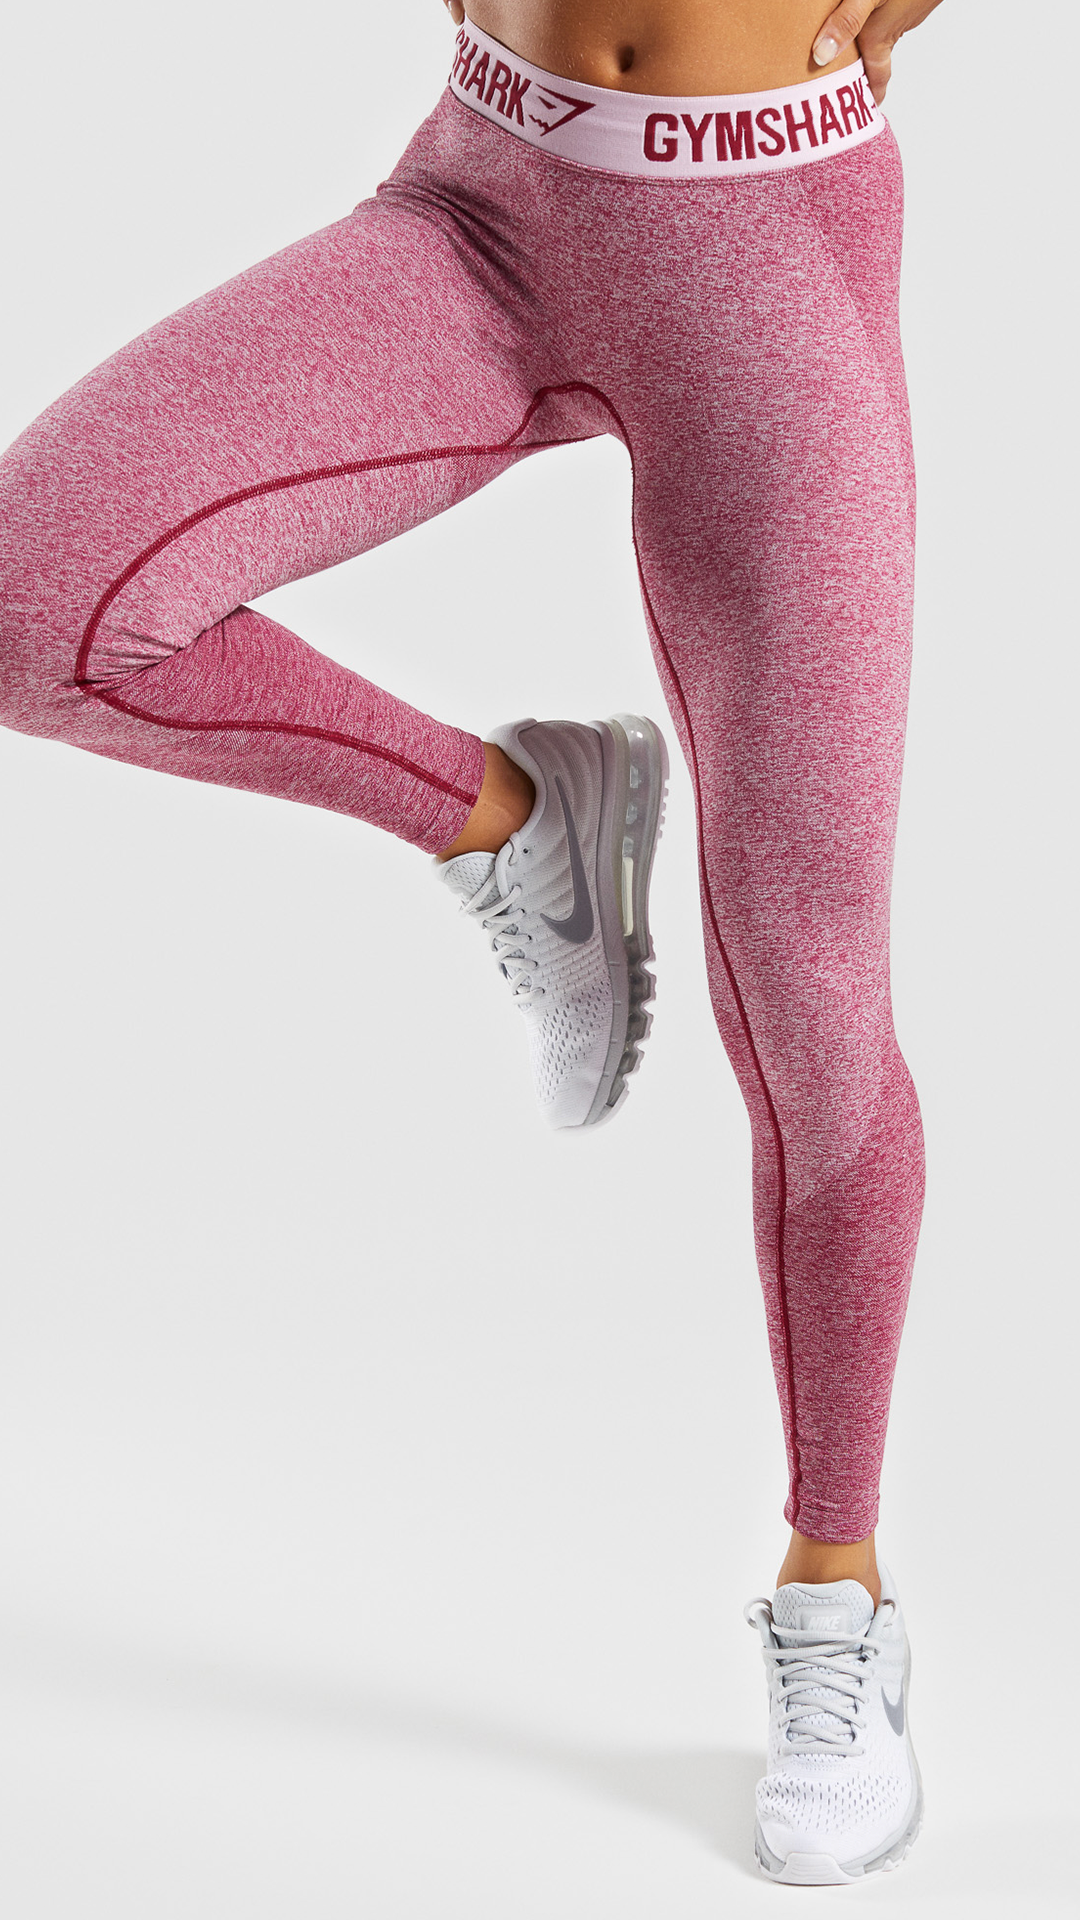 5c362cb9e2d46 Gymshark Flex Leggings, Beet Marl/ Chalk Pink. Combining our signature  seamless knit with superior, sculpting design. #Gymshark #Workout #Flex  Leggings #New ...